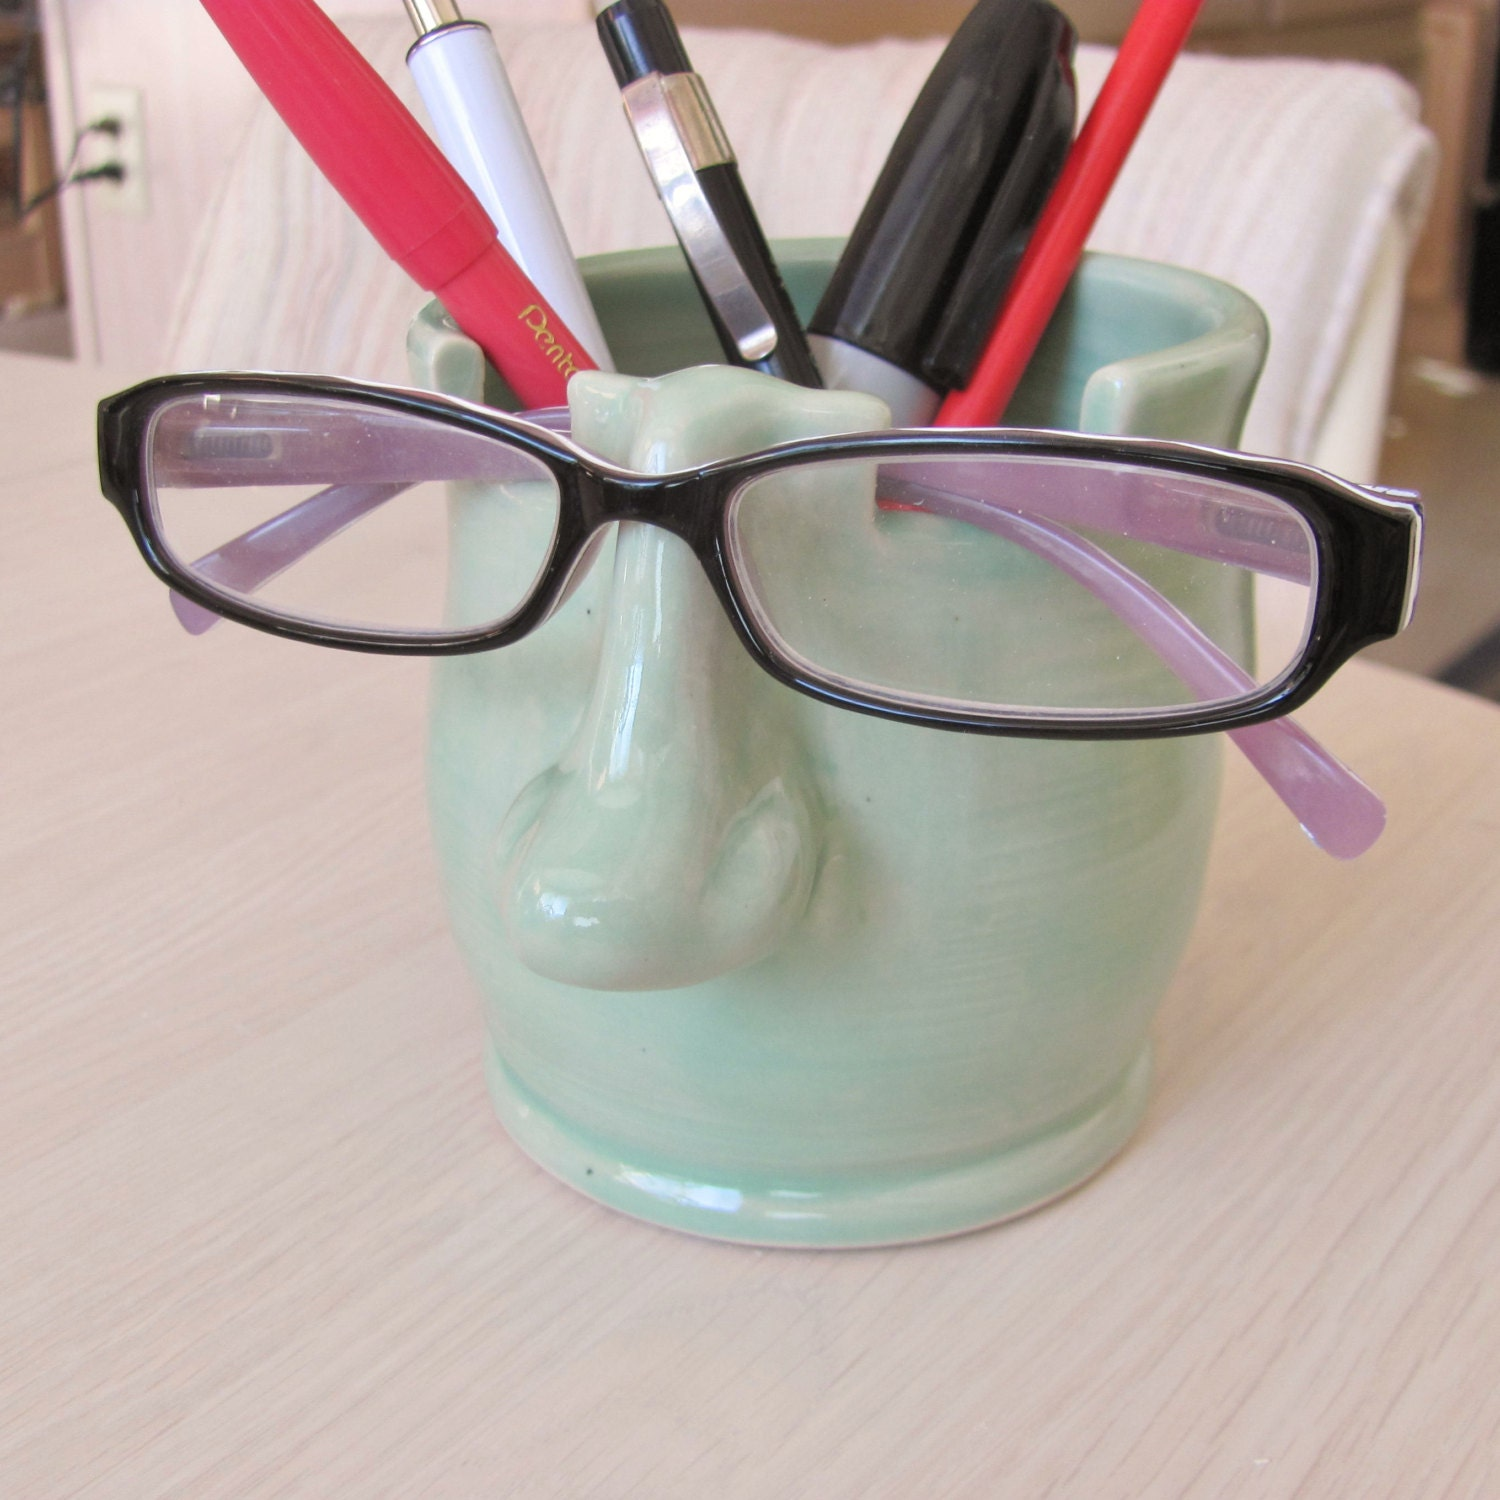 Pencil Holder Eyeglass Holder Ceramic Pottery Pencil Cup